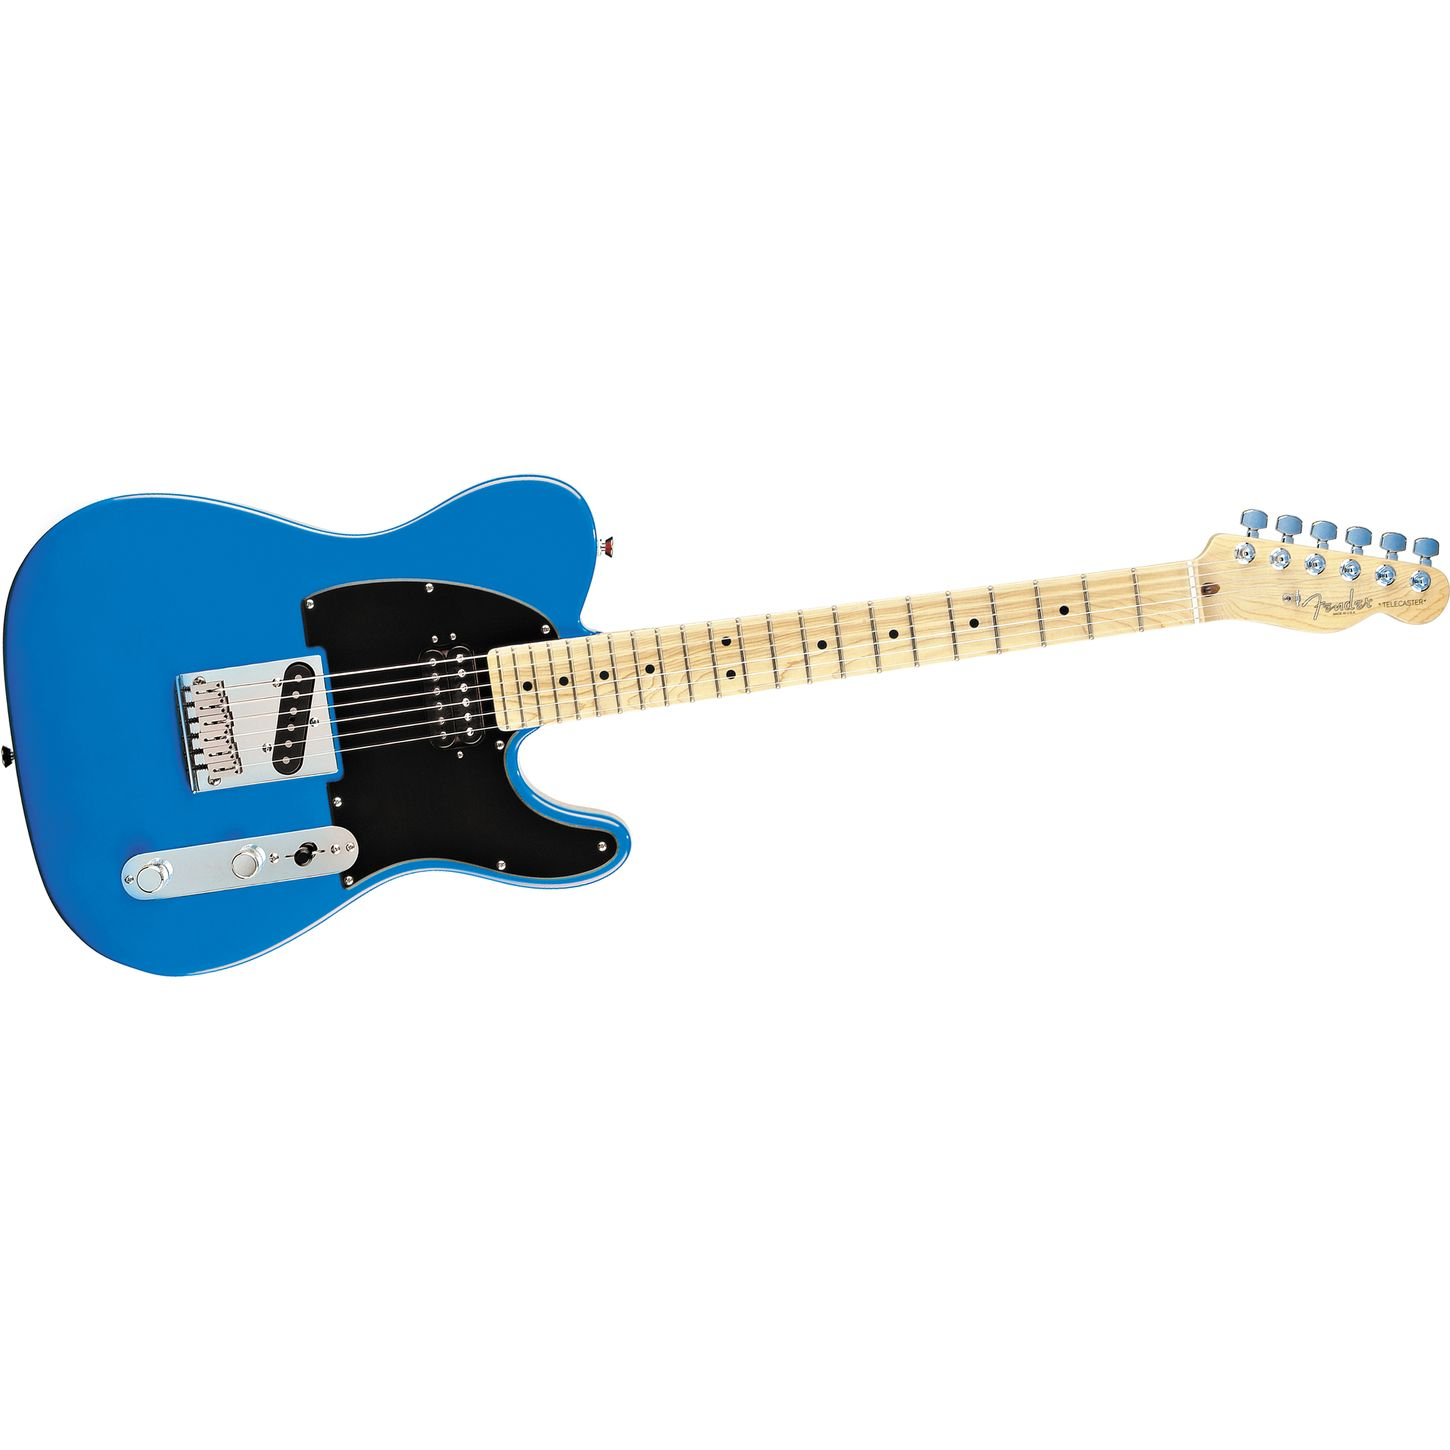 fender electric guitar telecaster american hs guitars musician friend tele larger